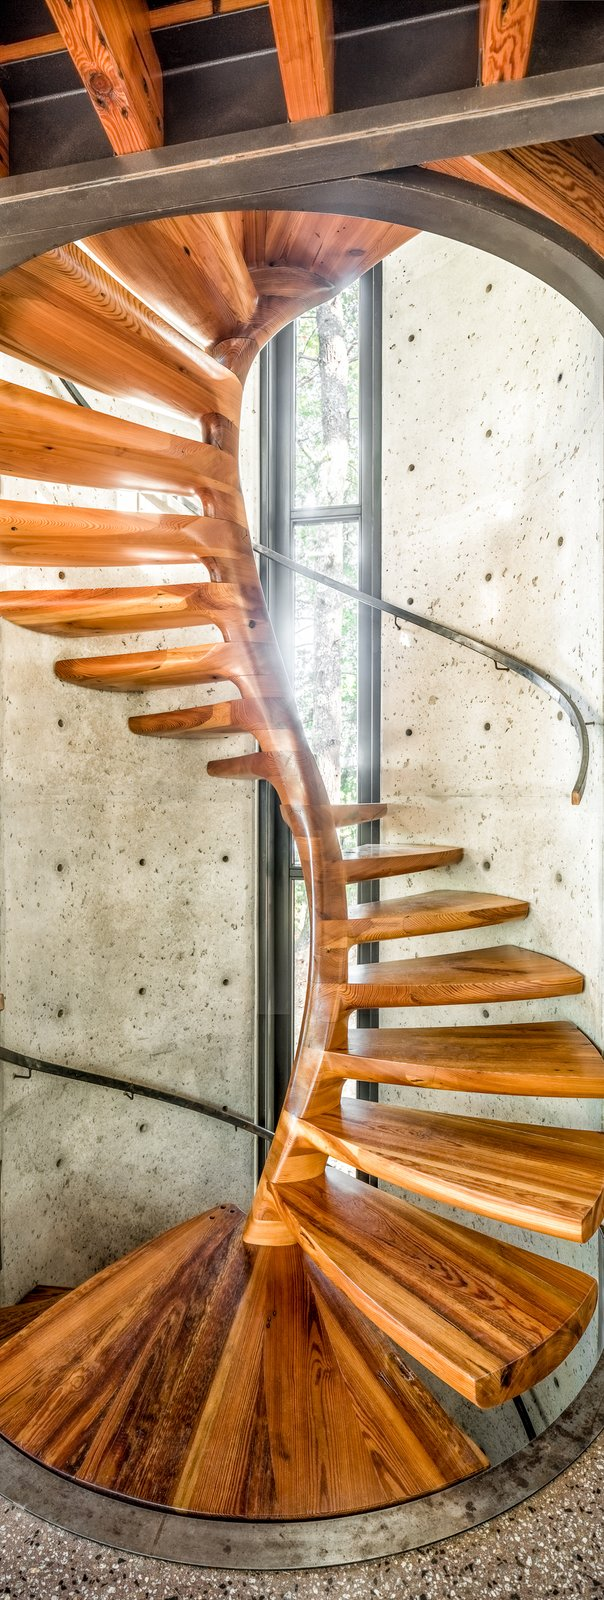 Whipplewood staircase